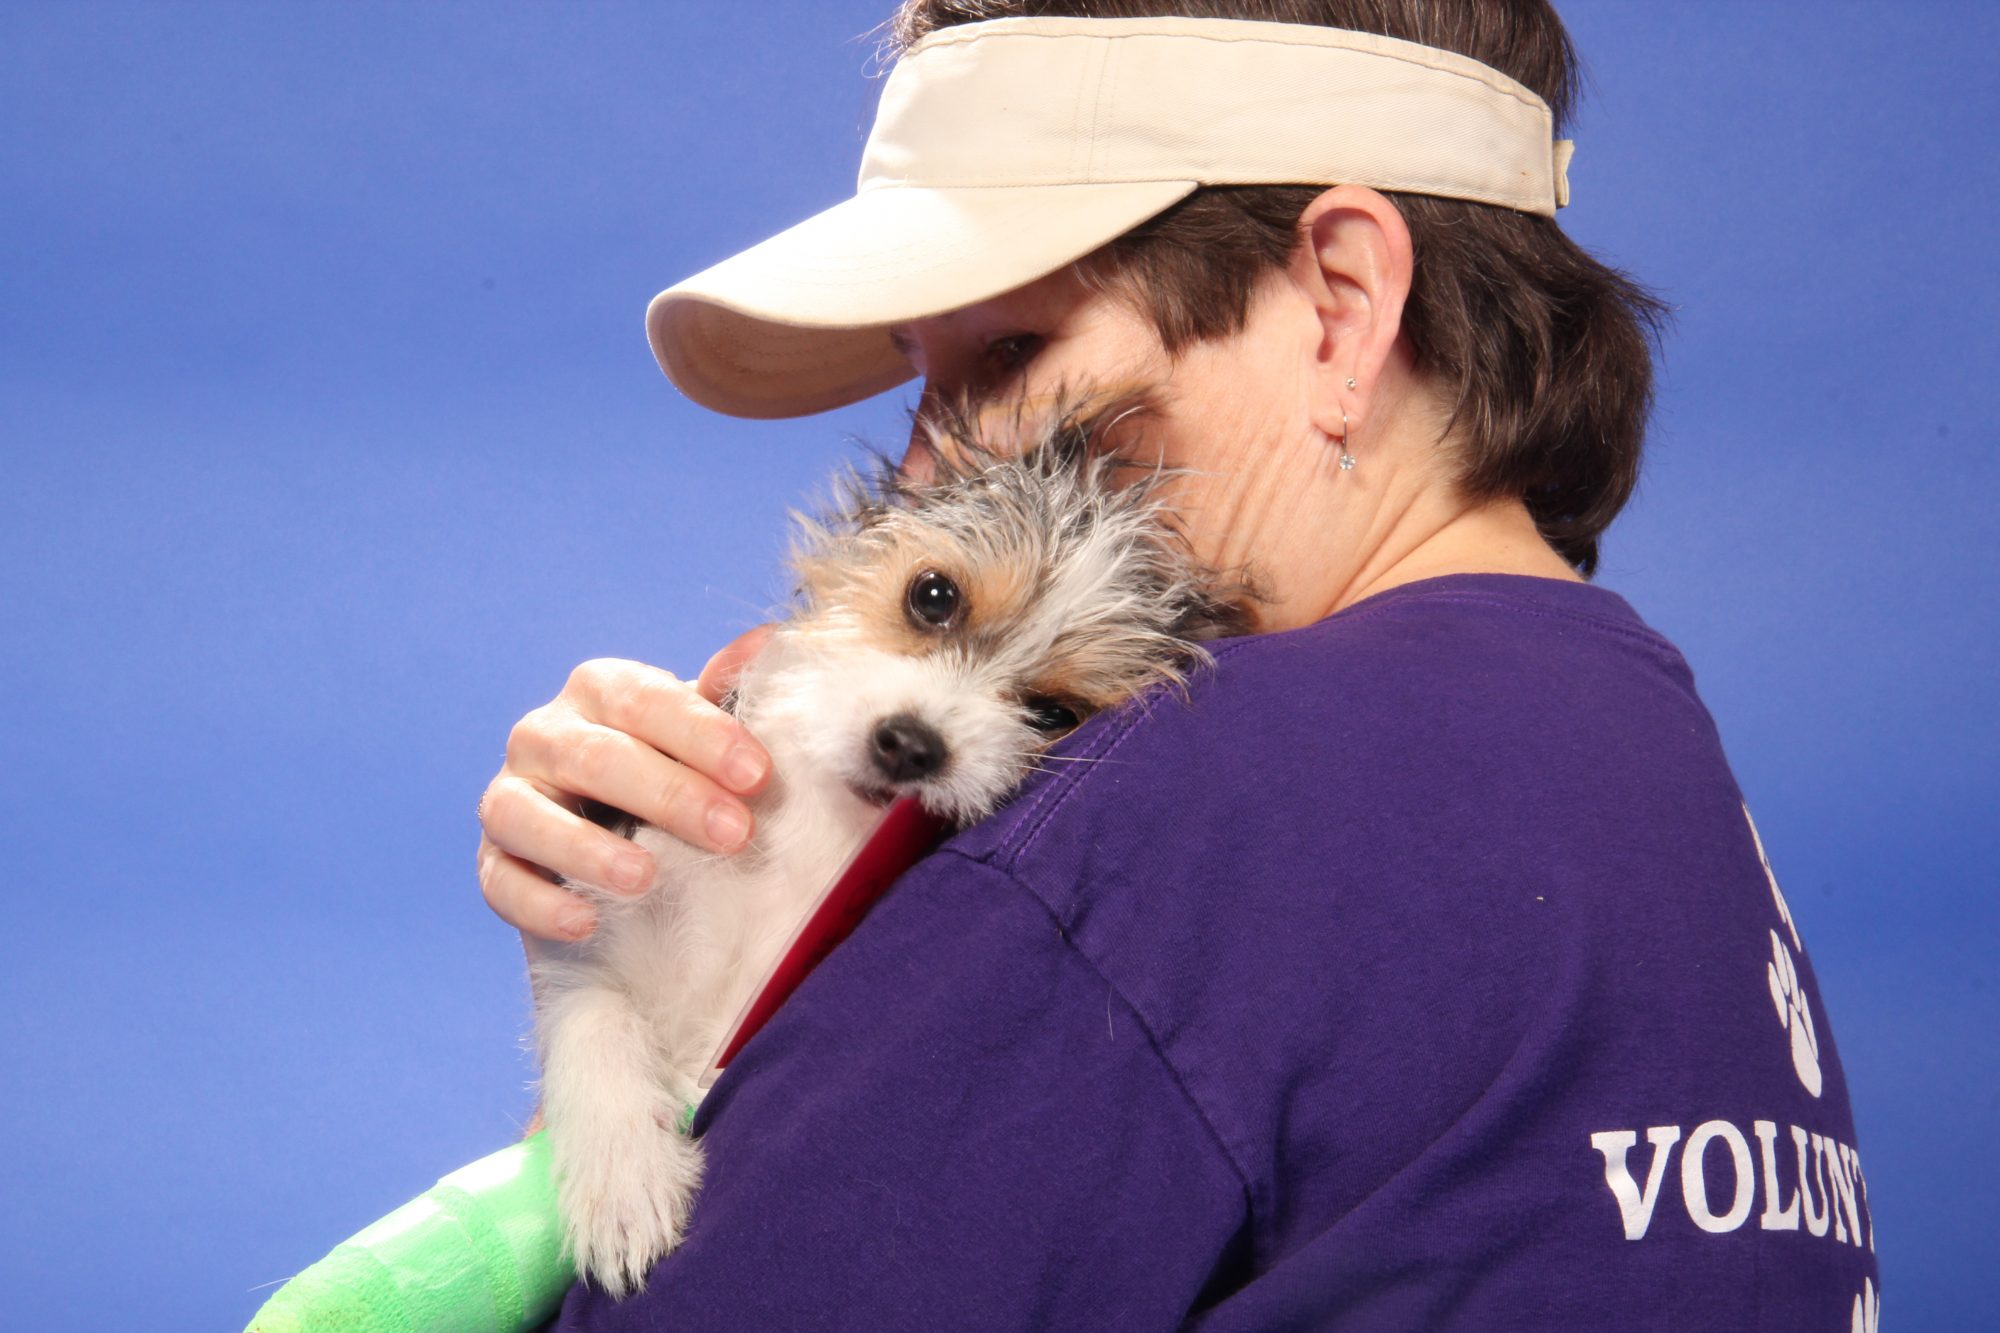 volunteer cuddling a puppy